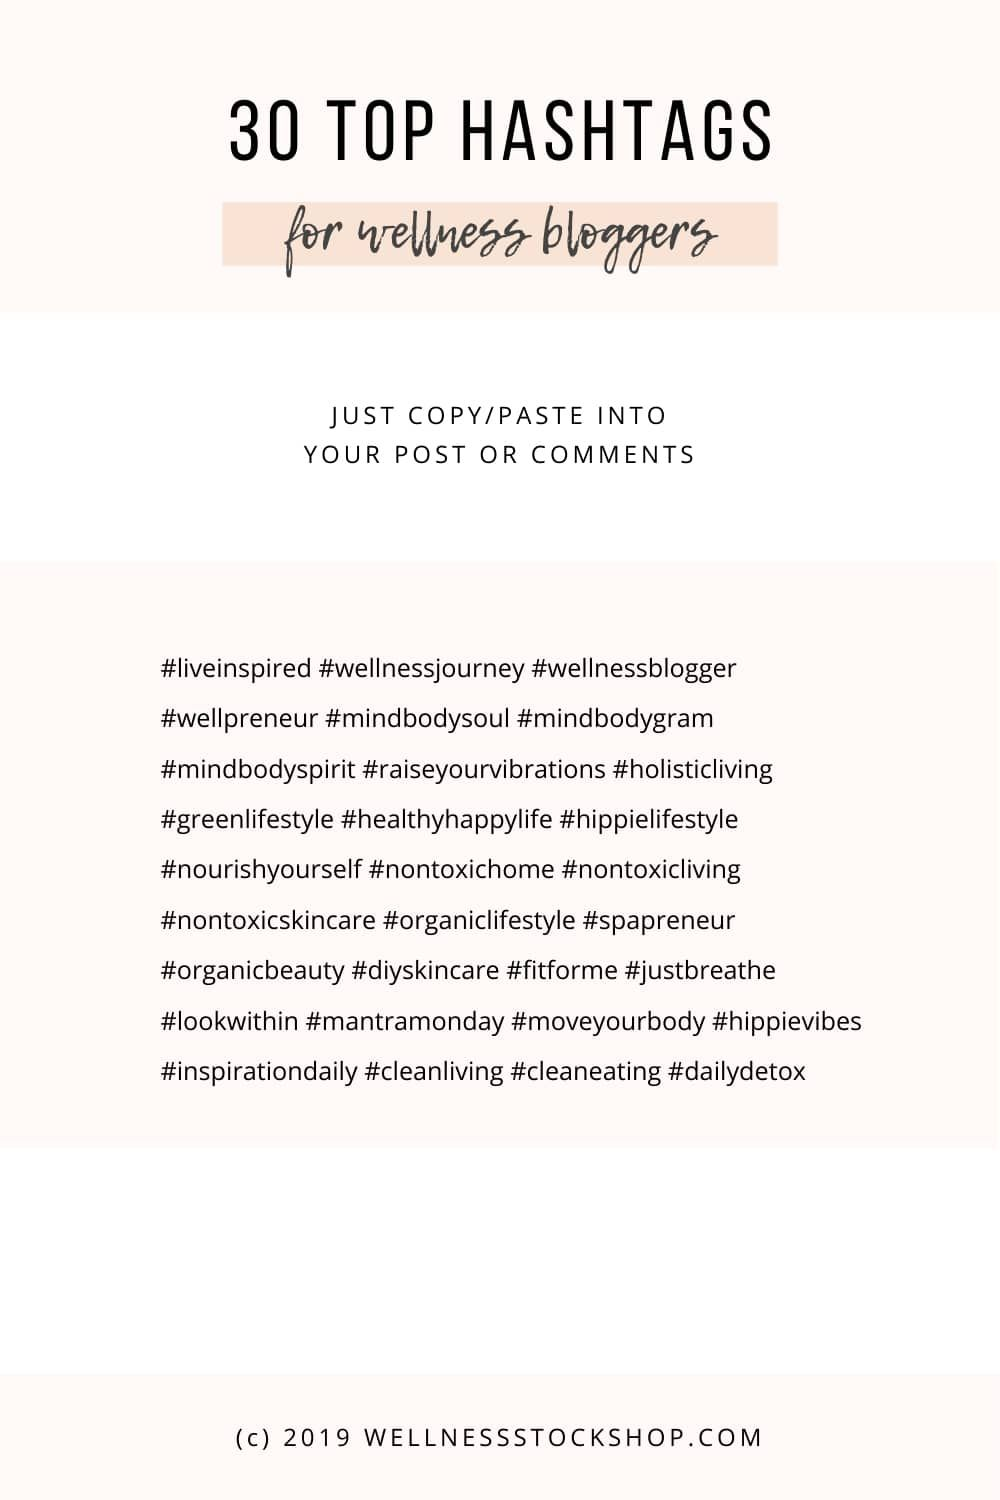 Top 30 Instagram Hashtags For Wellness Bloggers Wellness Stock Shop Instagram Hashtags For Likes Social Media Hashtags Hashtags For Likes